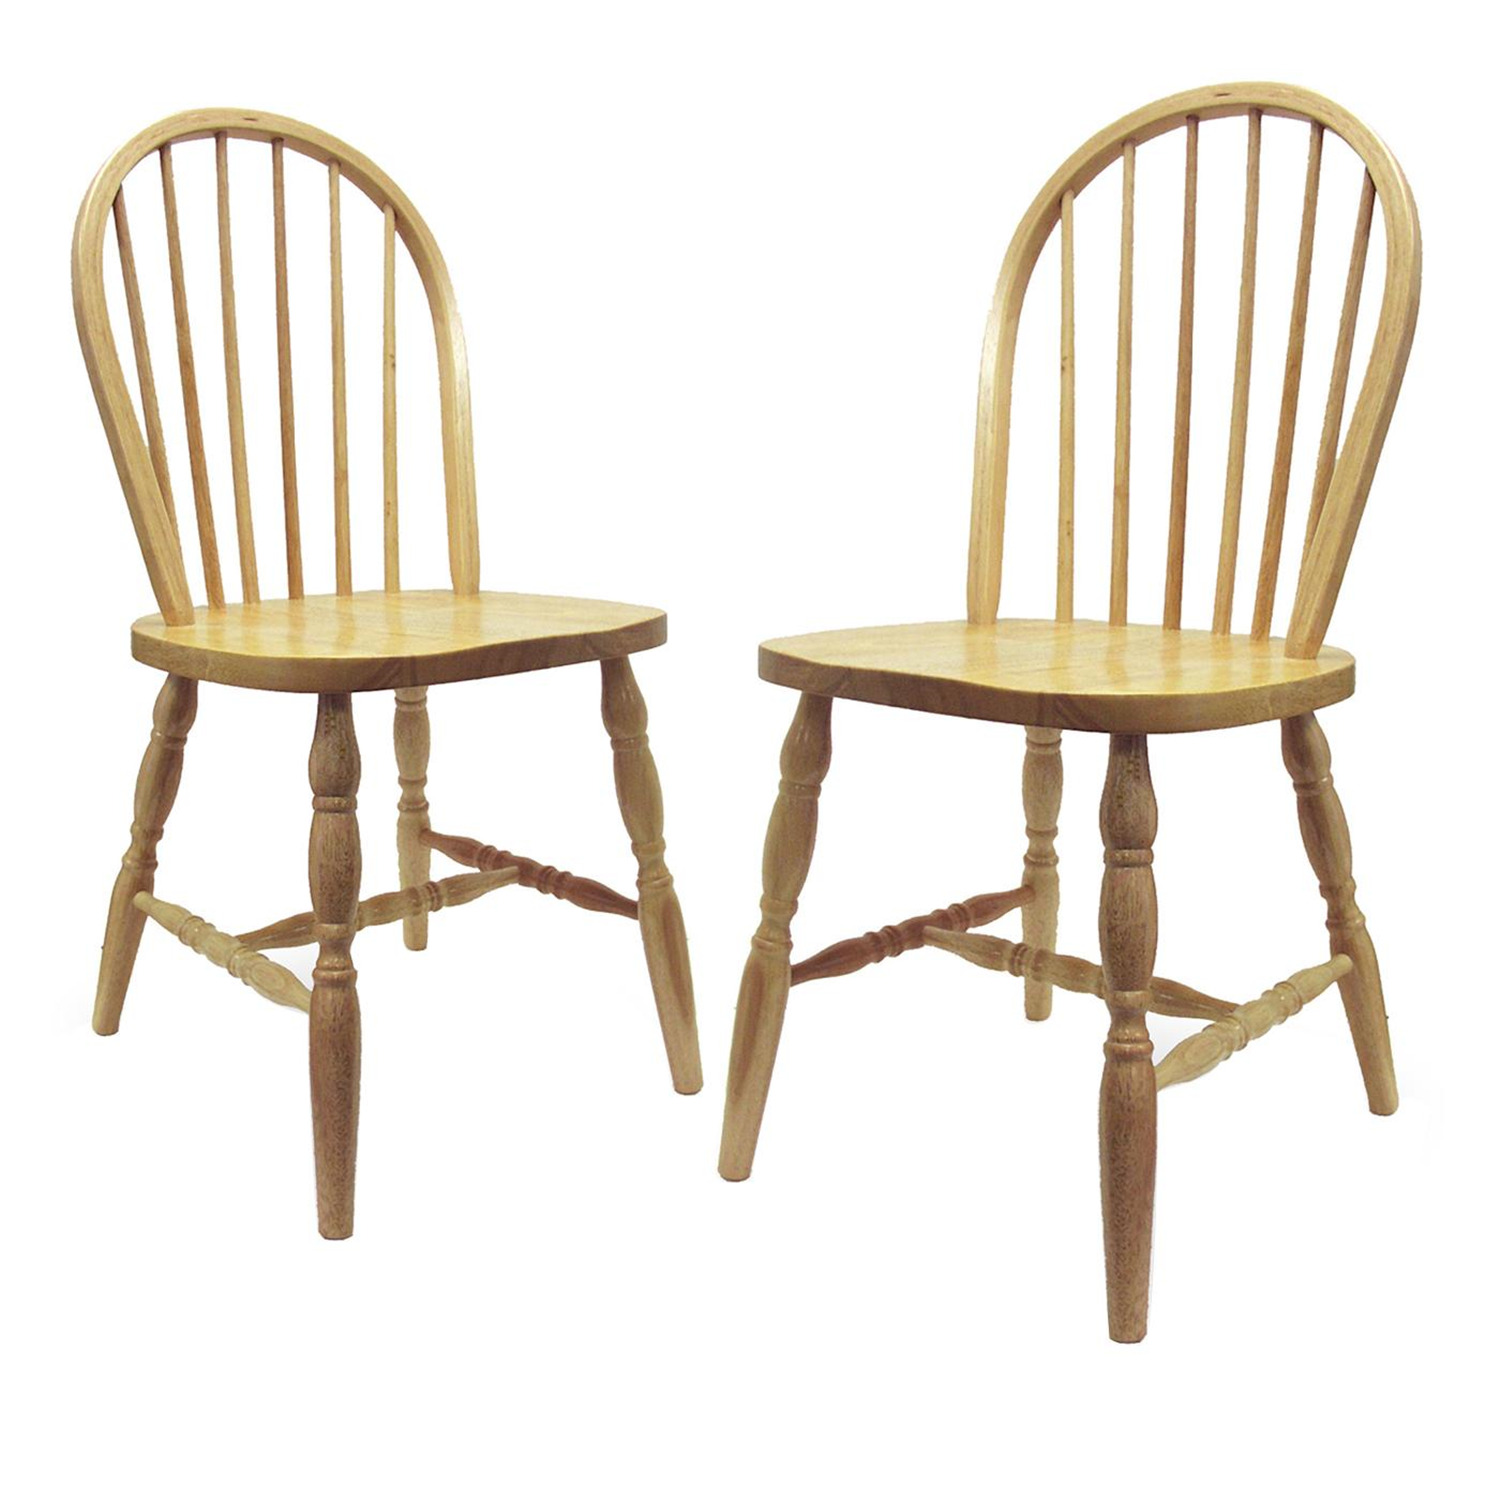 unfinished windsor chairs ergonomic chair store winsome set of 2 turn legs assembled by oj